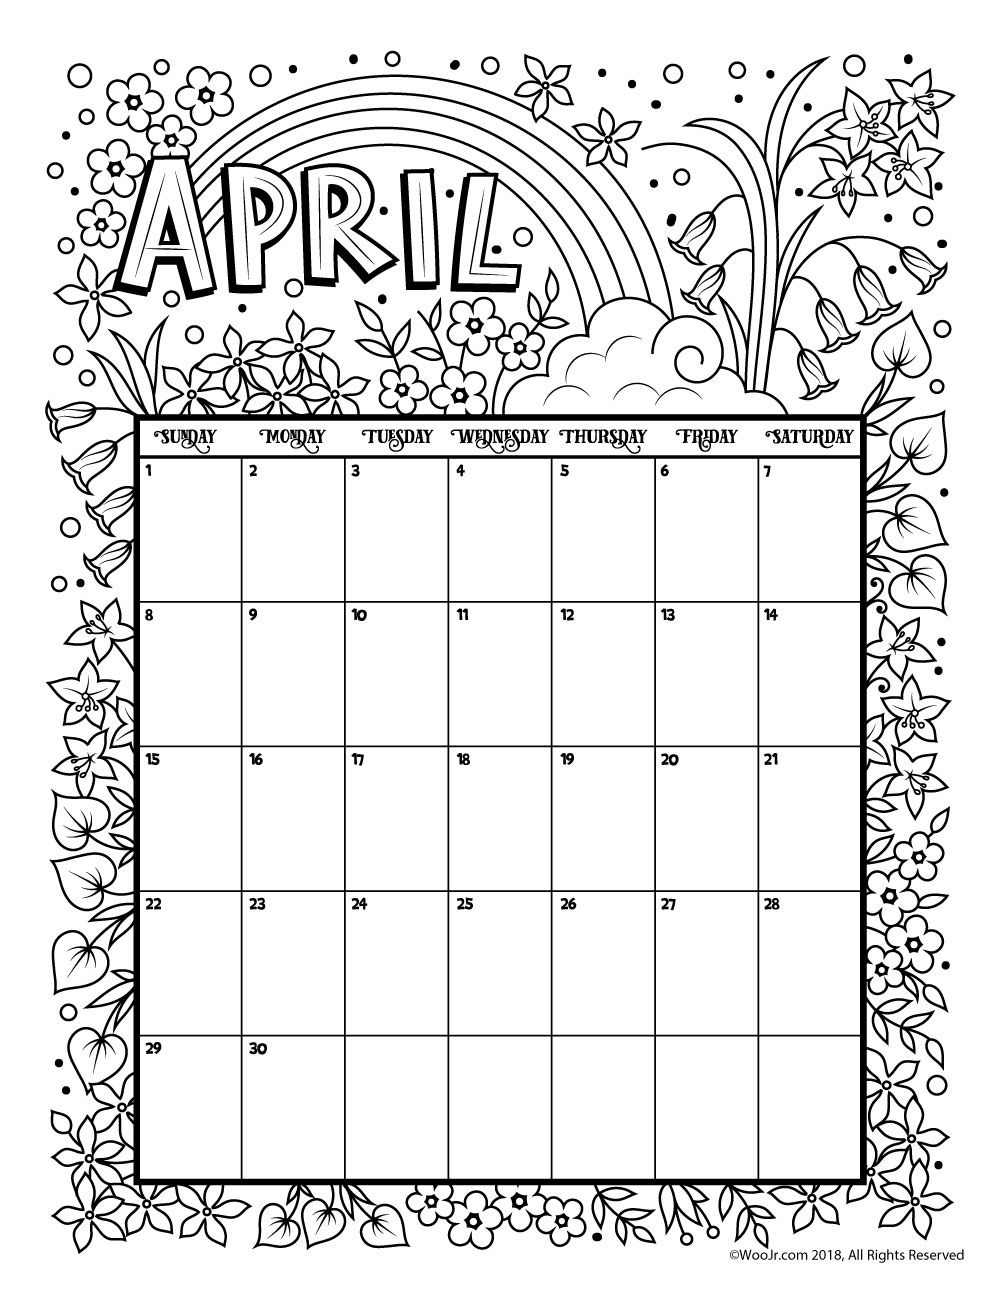 Printable Coloring Calendar For 2019 (And 2018!) | Holiday Happiness regarding Coloring Pages October Calendar 2019 Adults